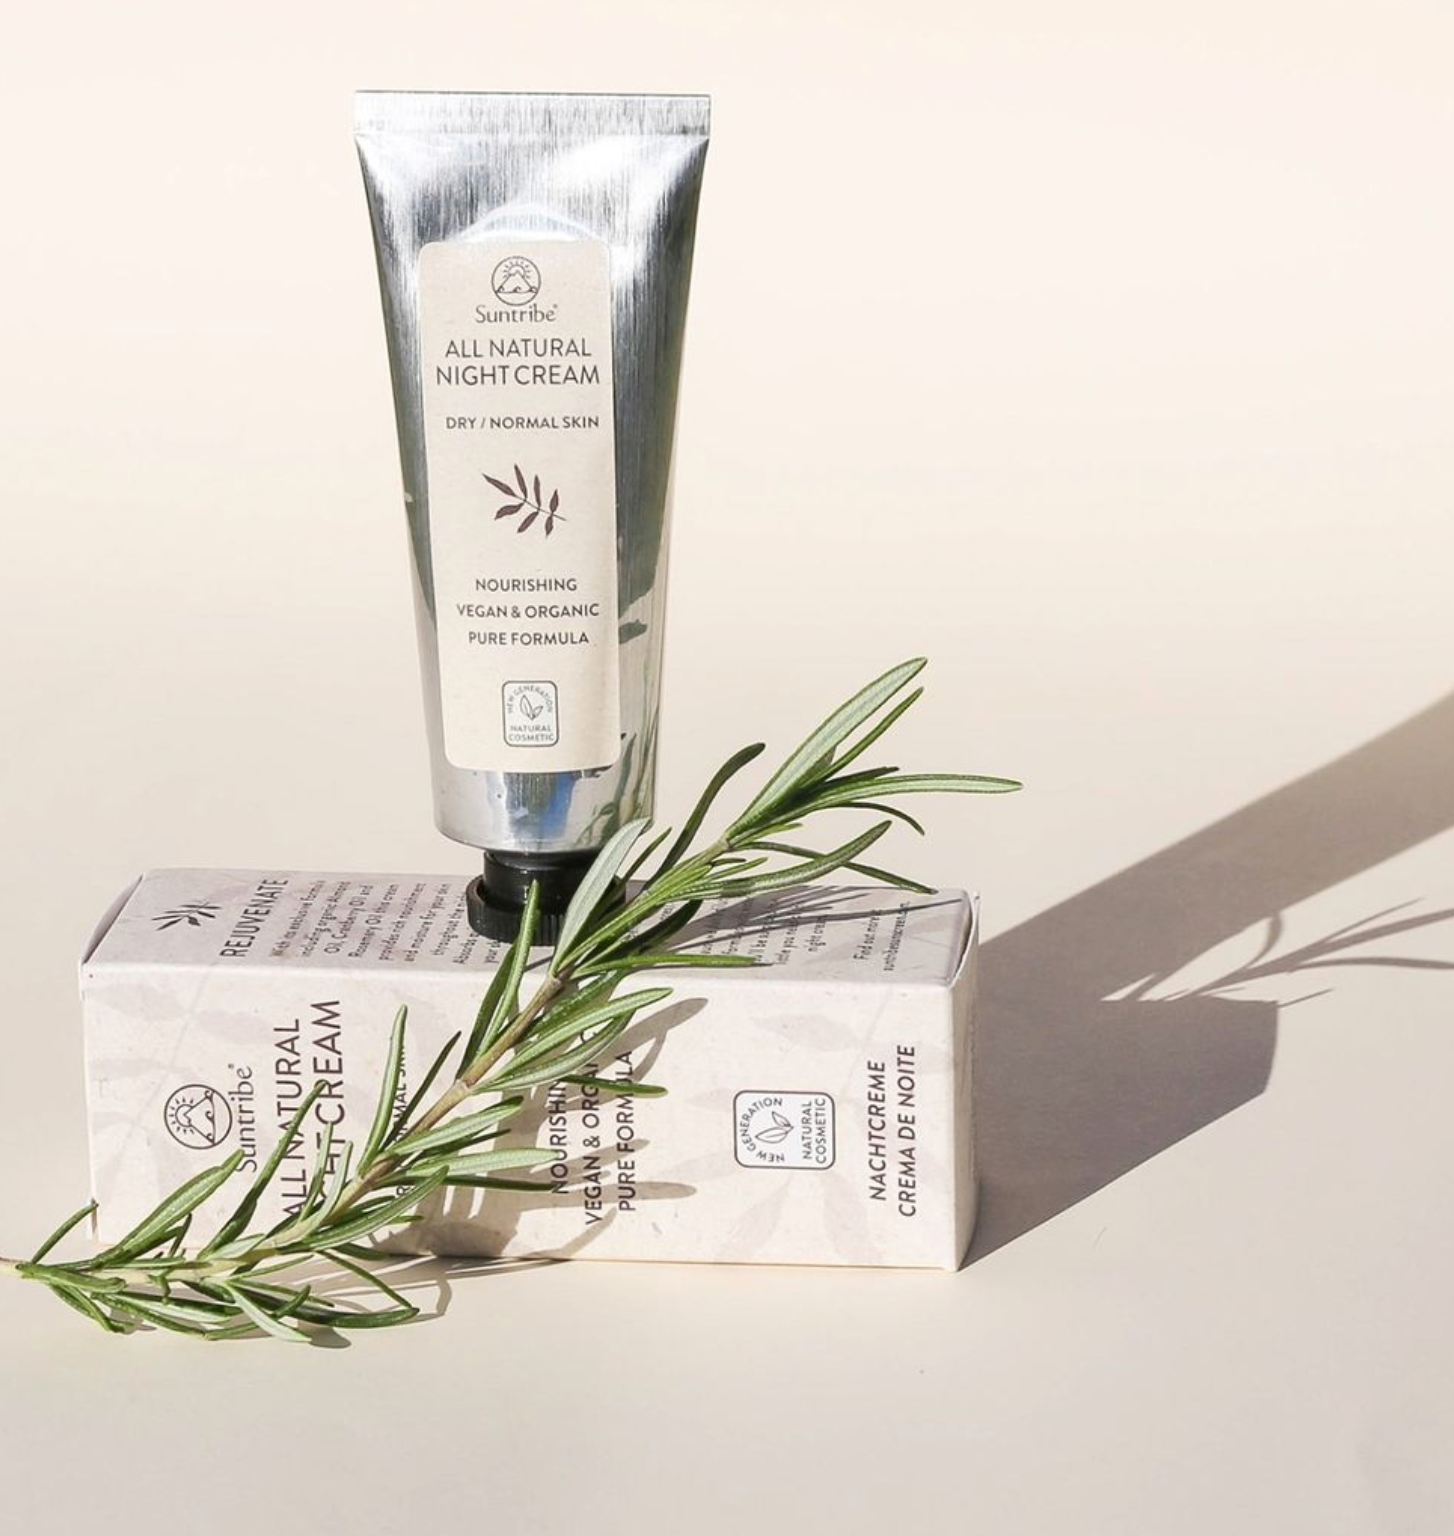 Suntribe BEAUTY | CL Organic Mineral Hypoallergenic Face and Body Sunscreen - SPF30